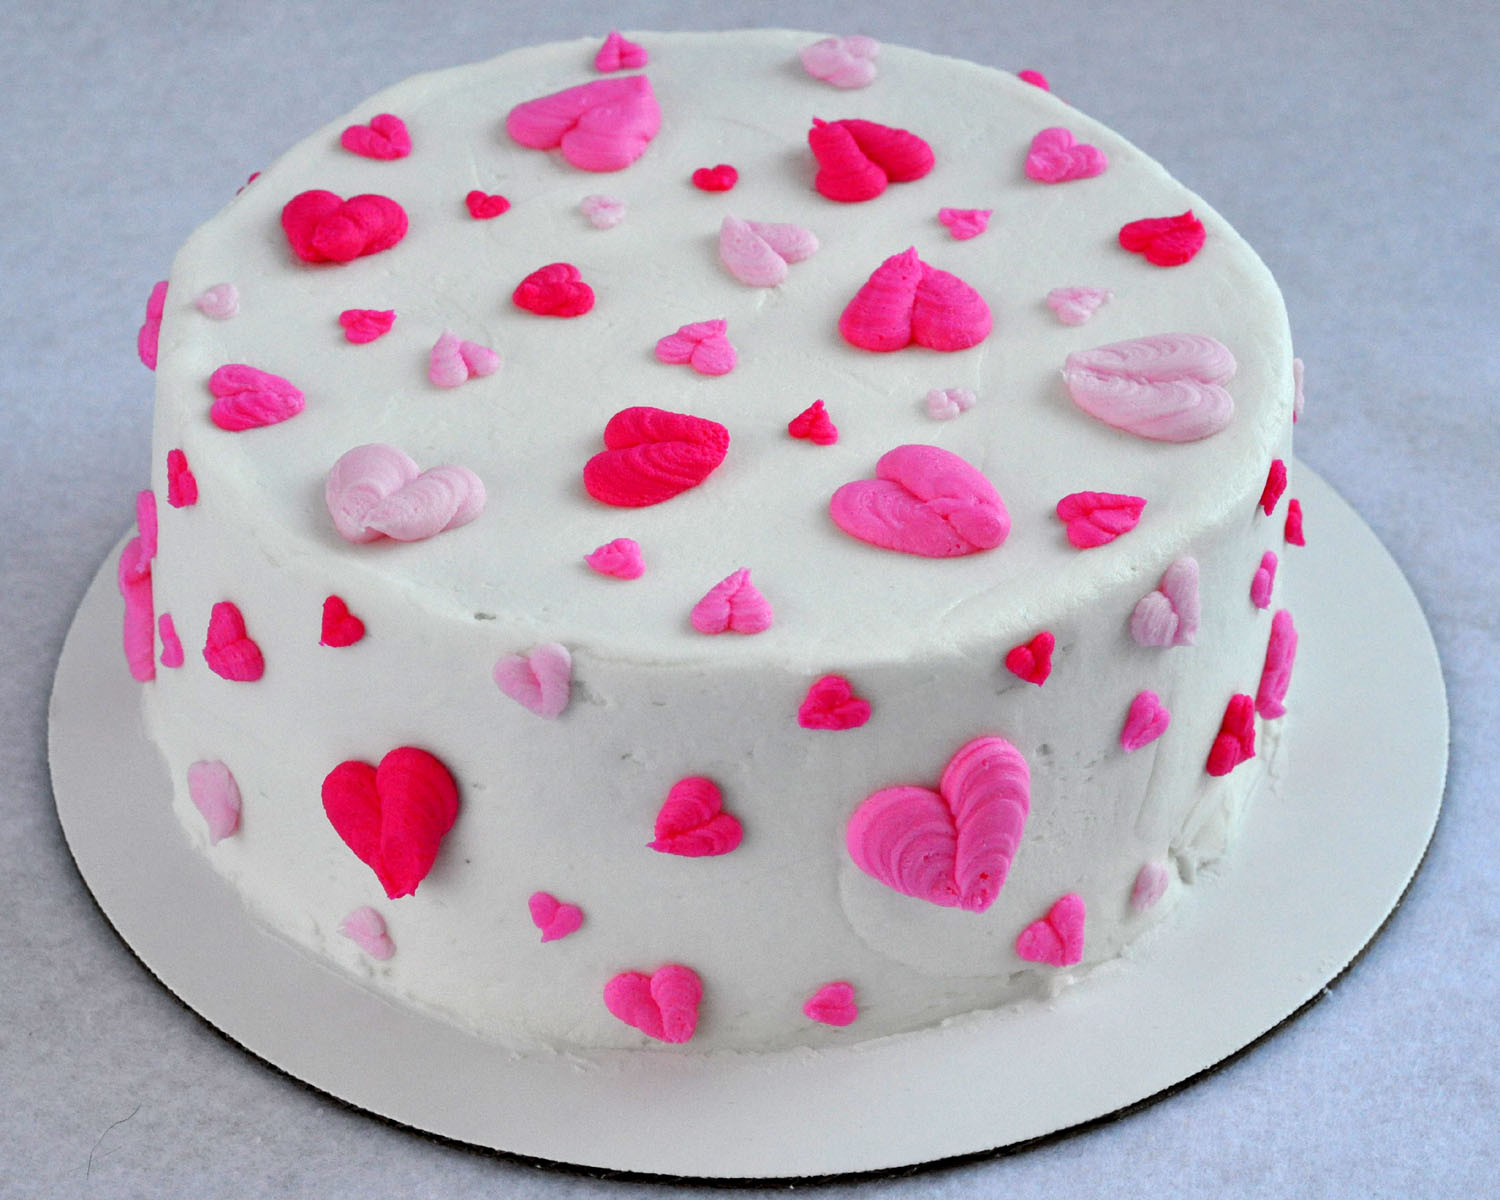 How To Decorate A Heart Shaped Cake With Fondant Icing